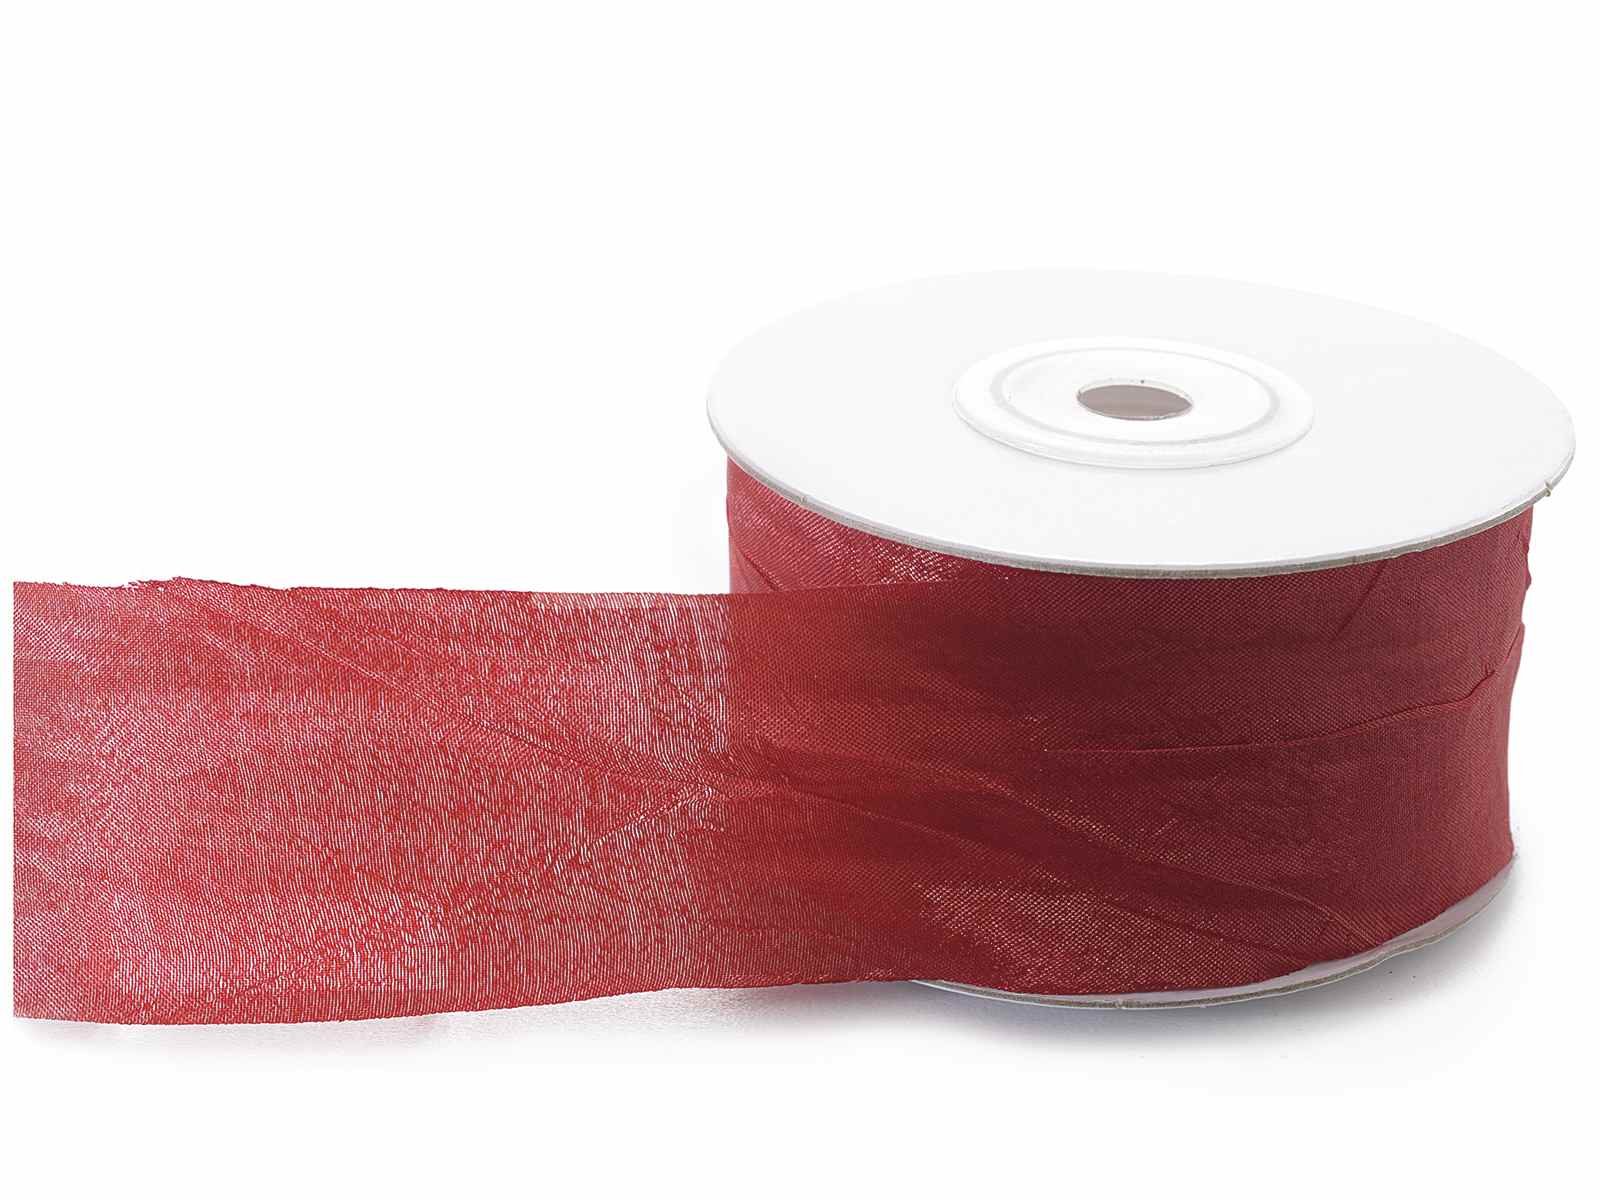 Rote polyester band zerknittert wirkung schnittkan for Rote wandfarbe wirkung